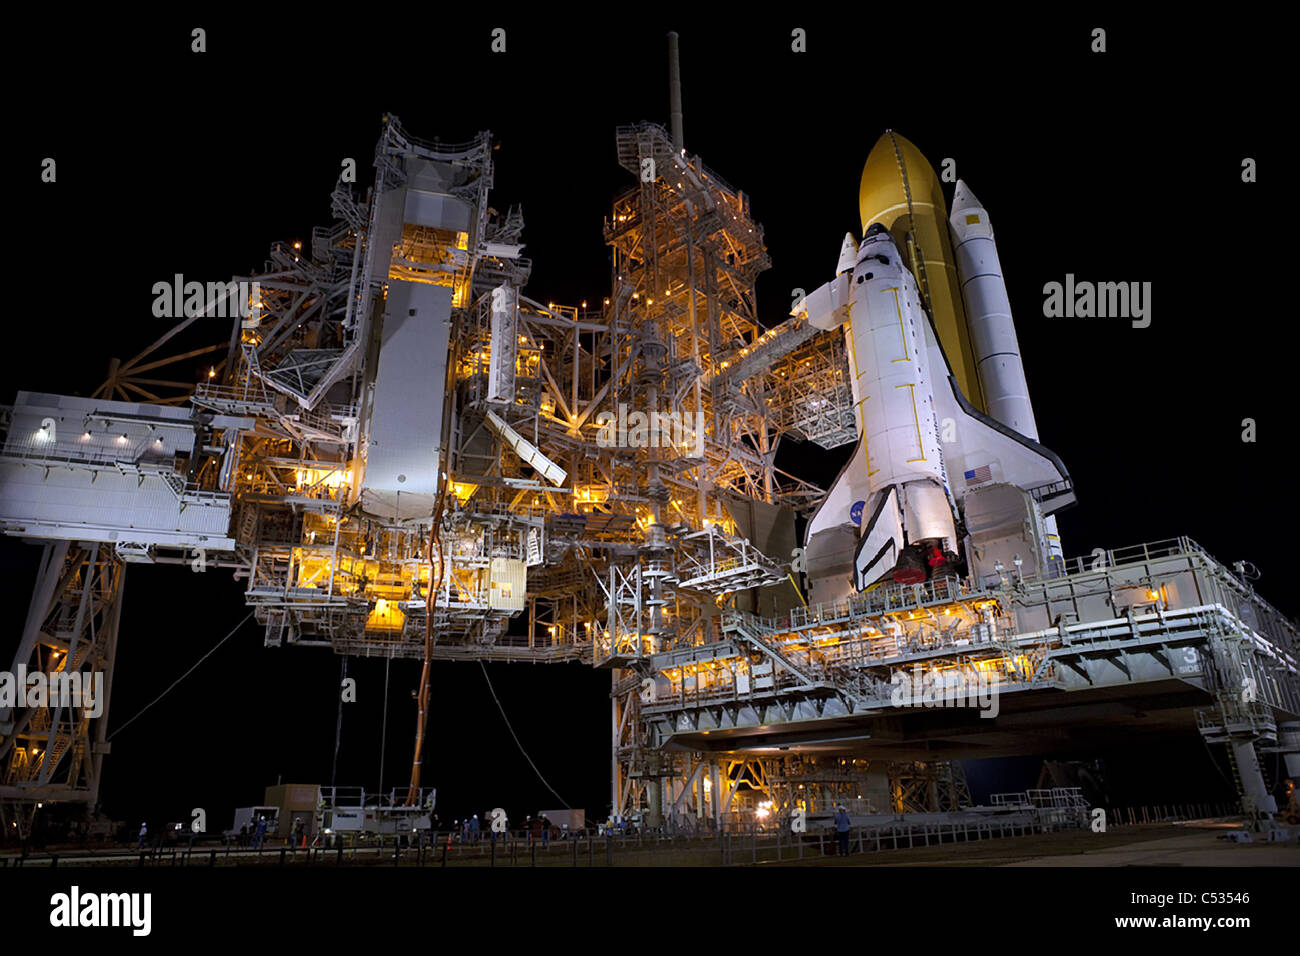 Atlantis STS-135, the final space shuttle mission on Launch Pad 39A at NASA's Kennedy Space Center in Florida. - Stock Image